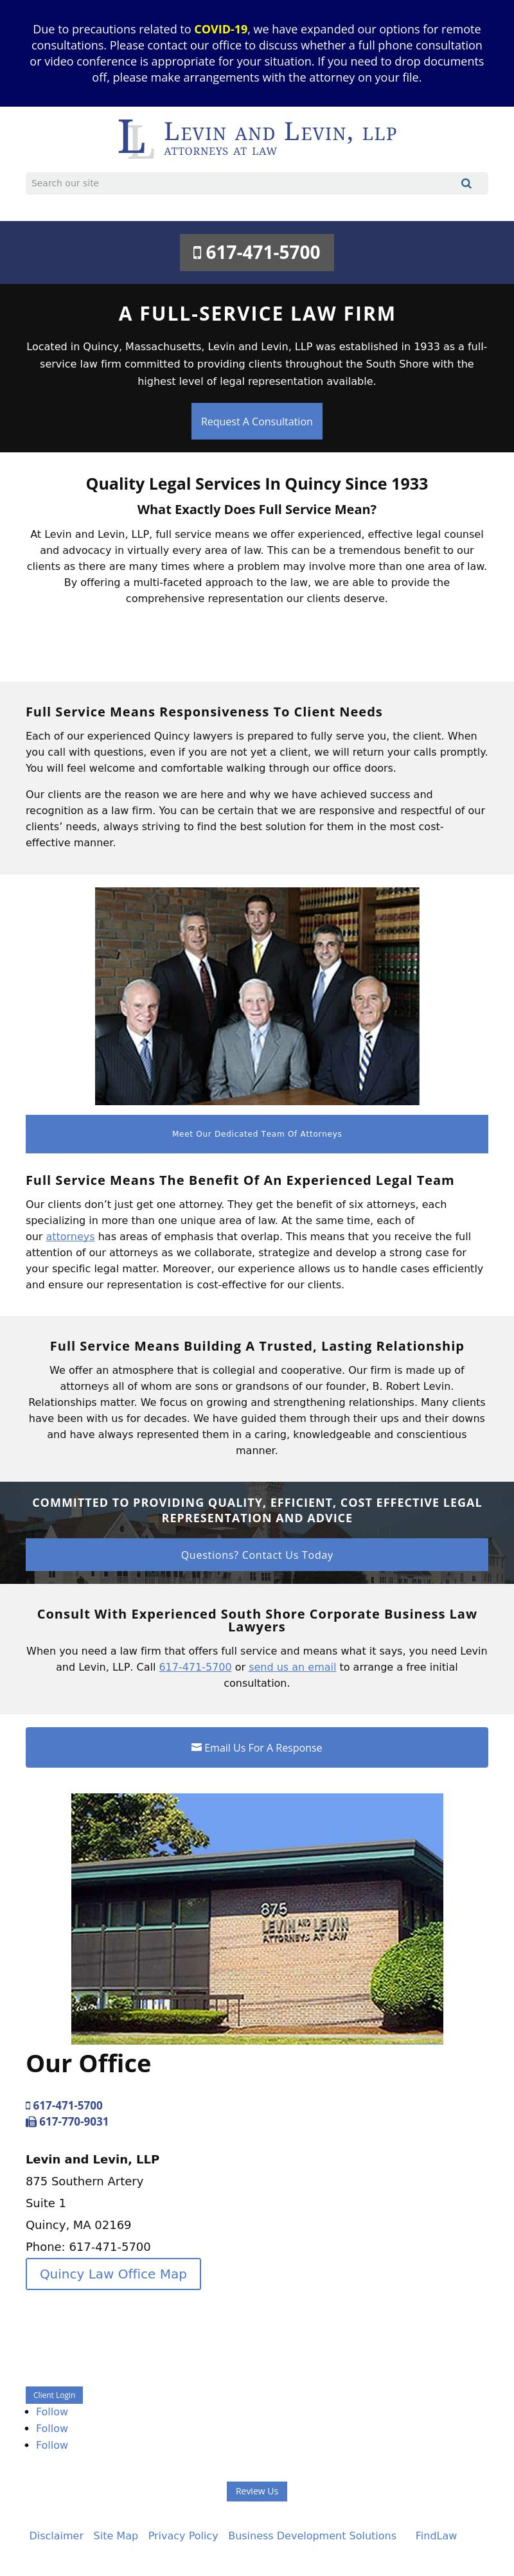 Levin and Levin, LLP - Quincy MA Lawyers